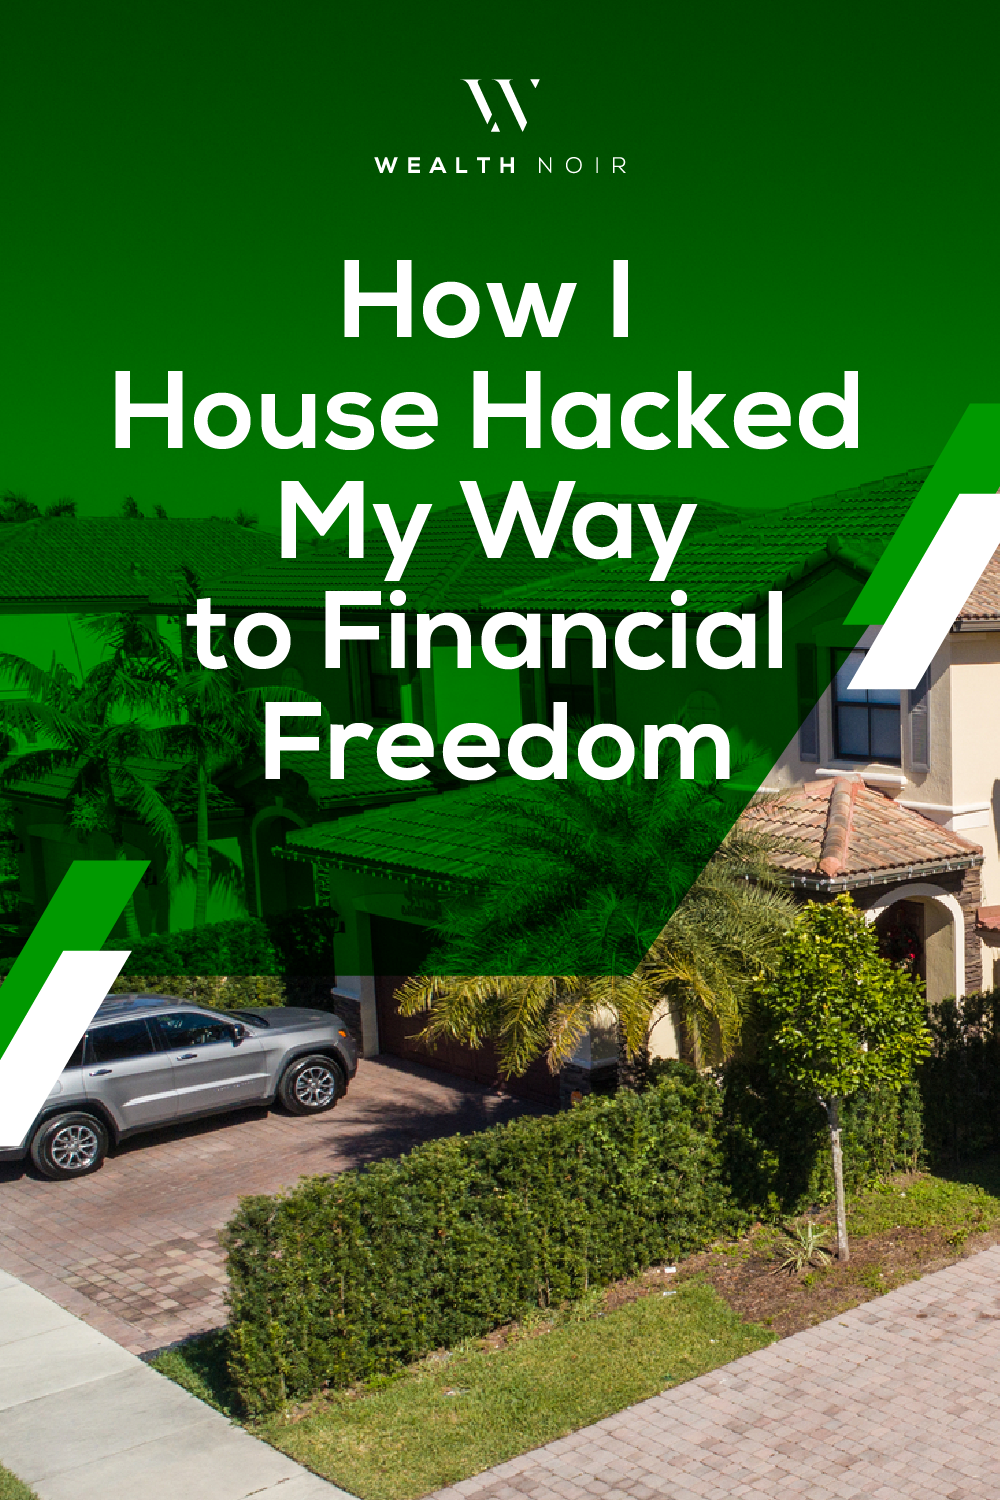 How I House Hacked My Way to Financial Freedom